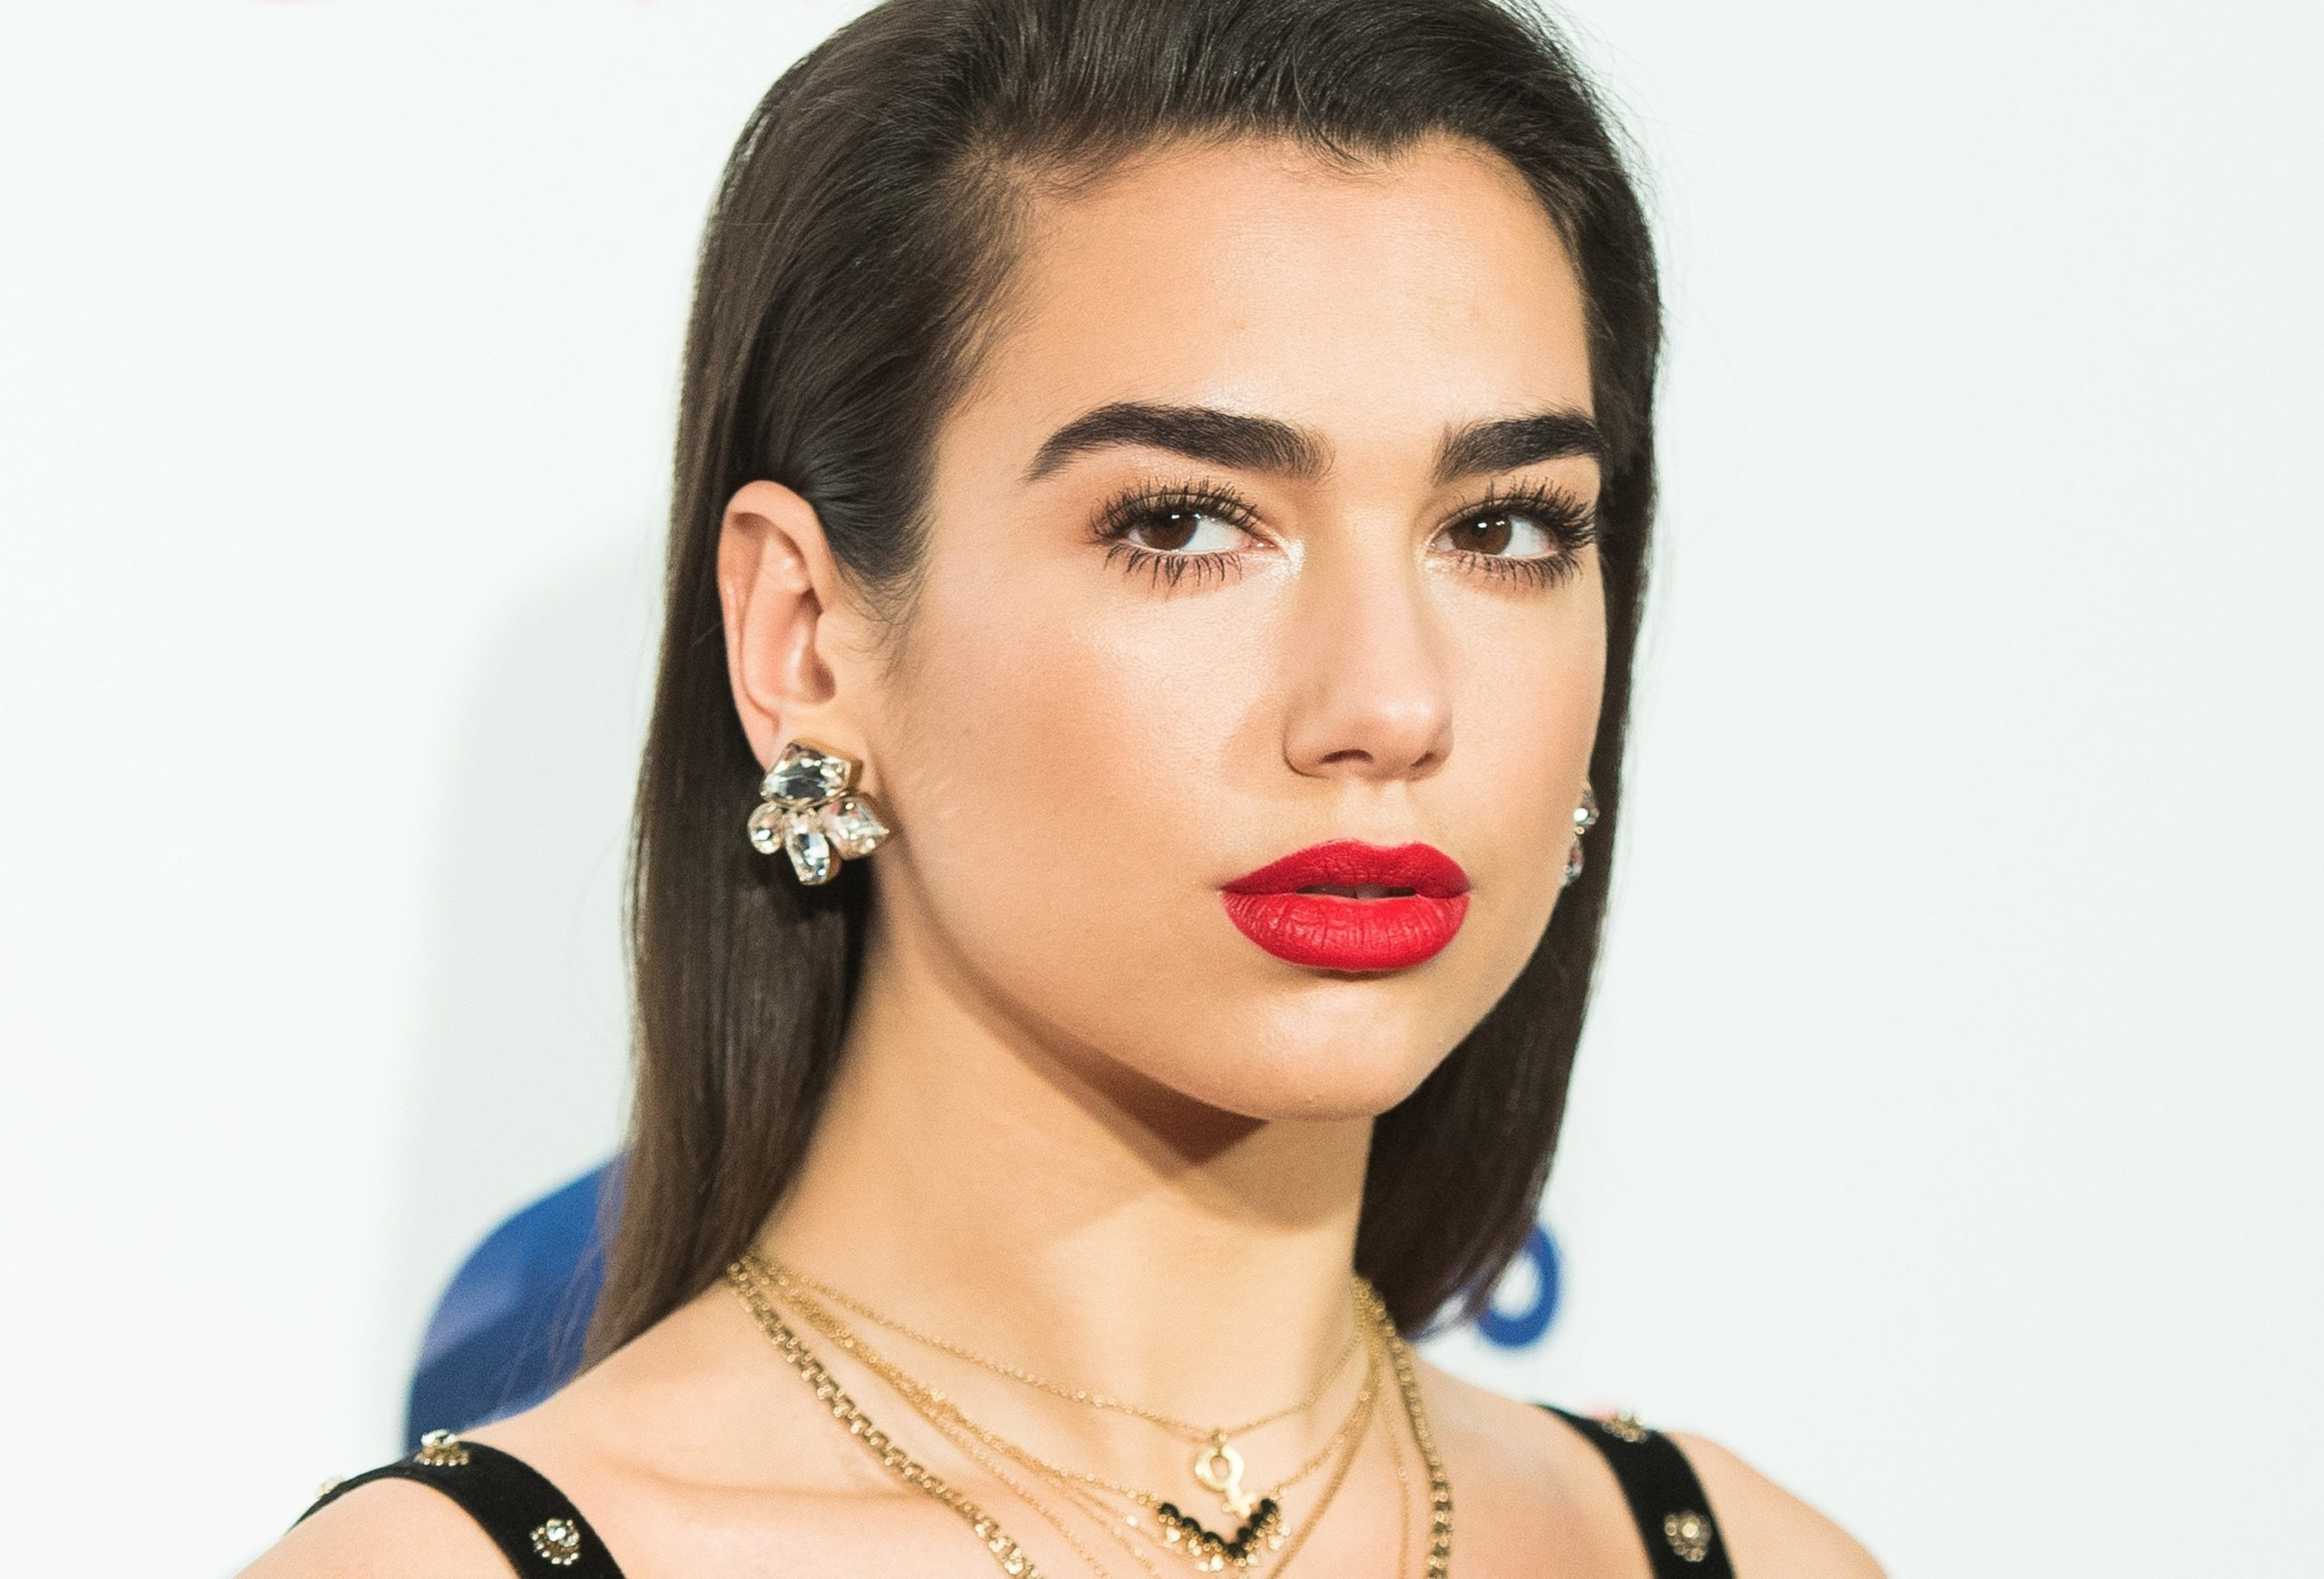 Dua Lipa Hot Red Lips scaled - Dua Lipa Net Worth, Pics, Wallpapers, Career and Biography